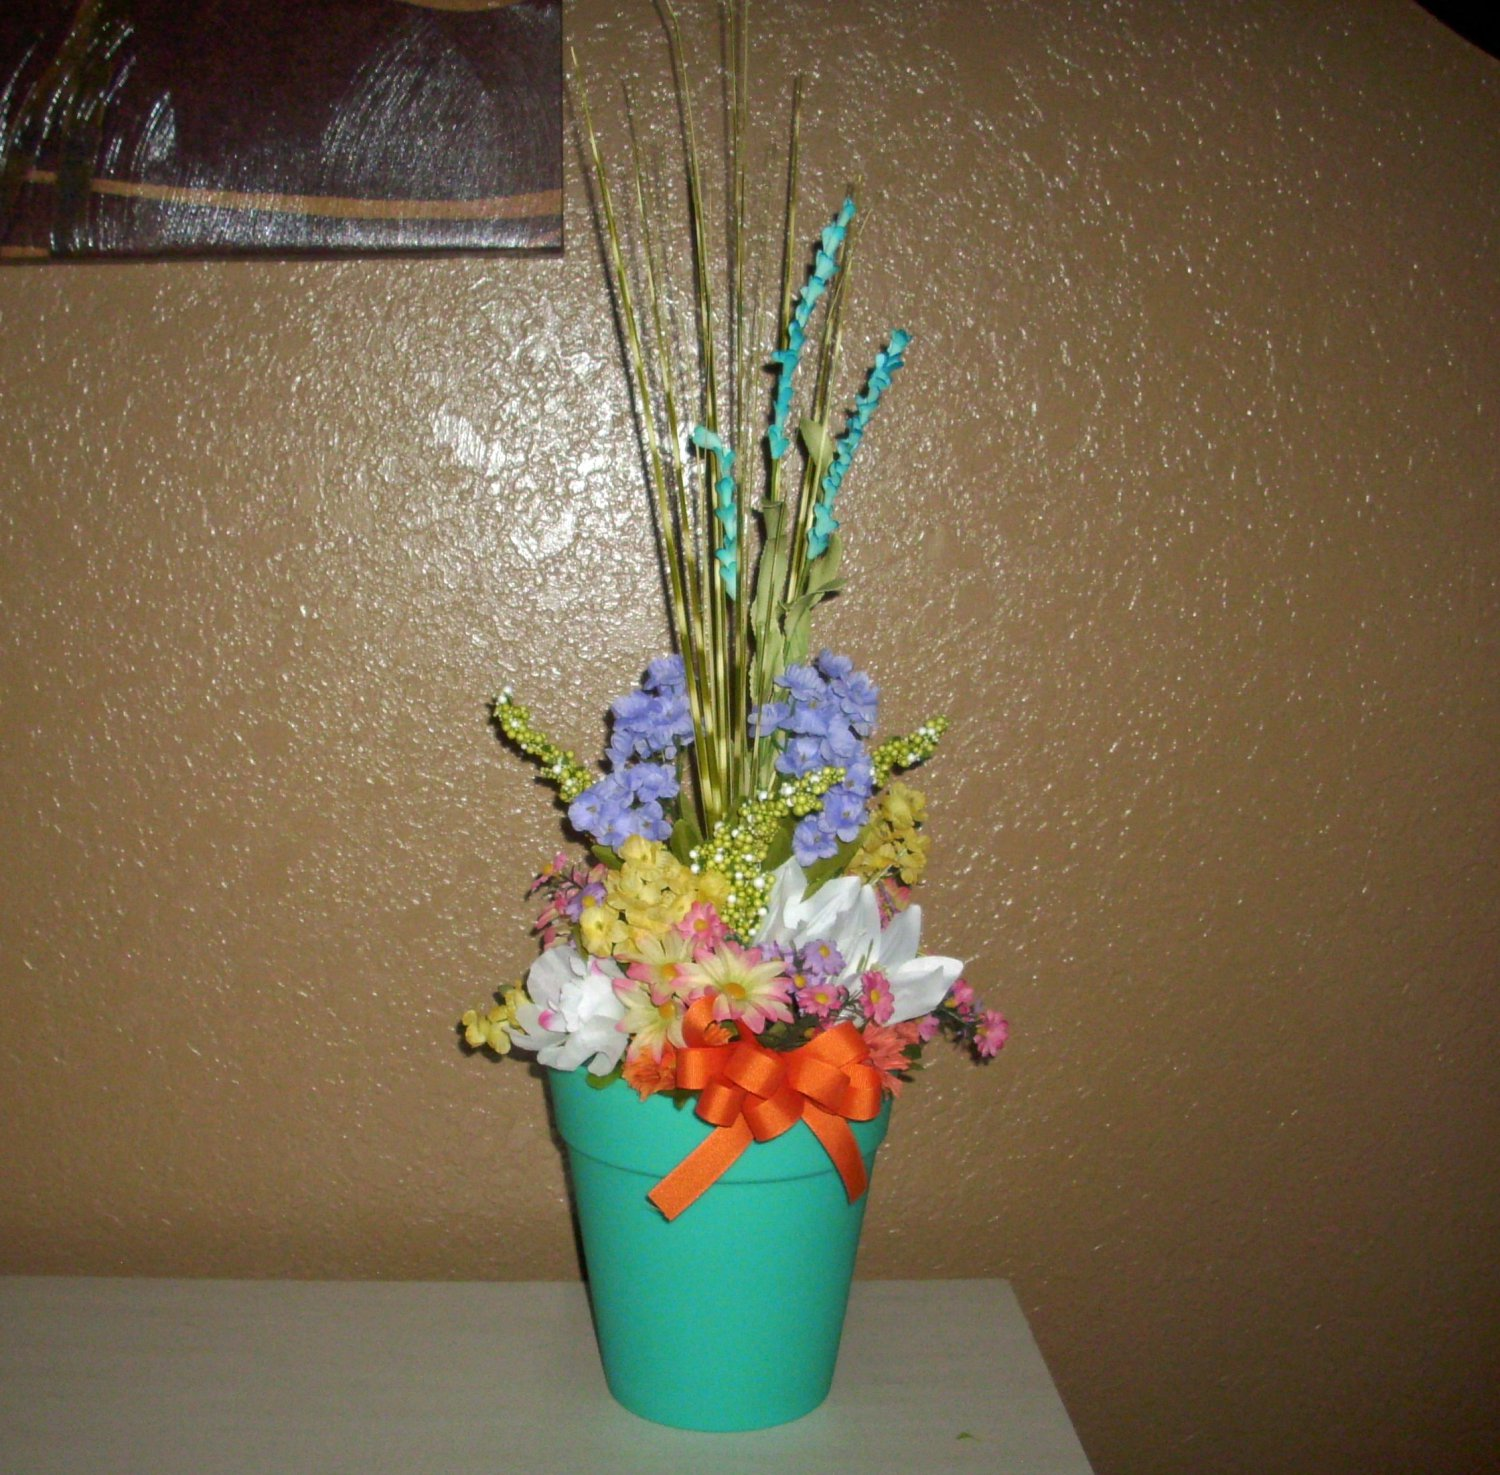 All around Bouquet with Silk Flowers, Bright colored pot